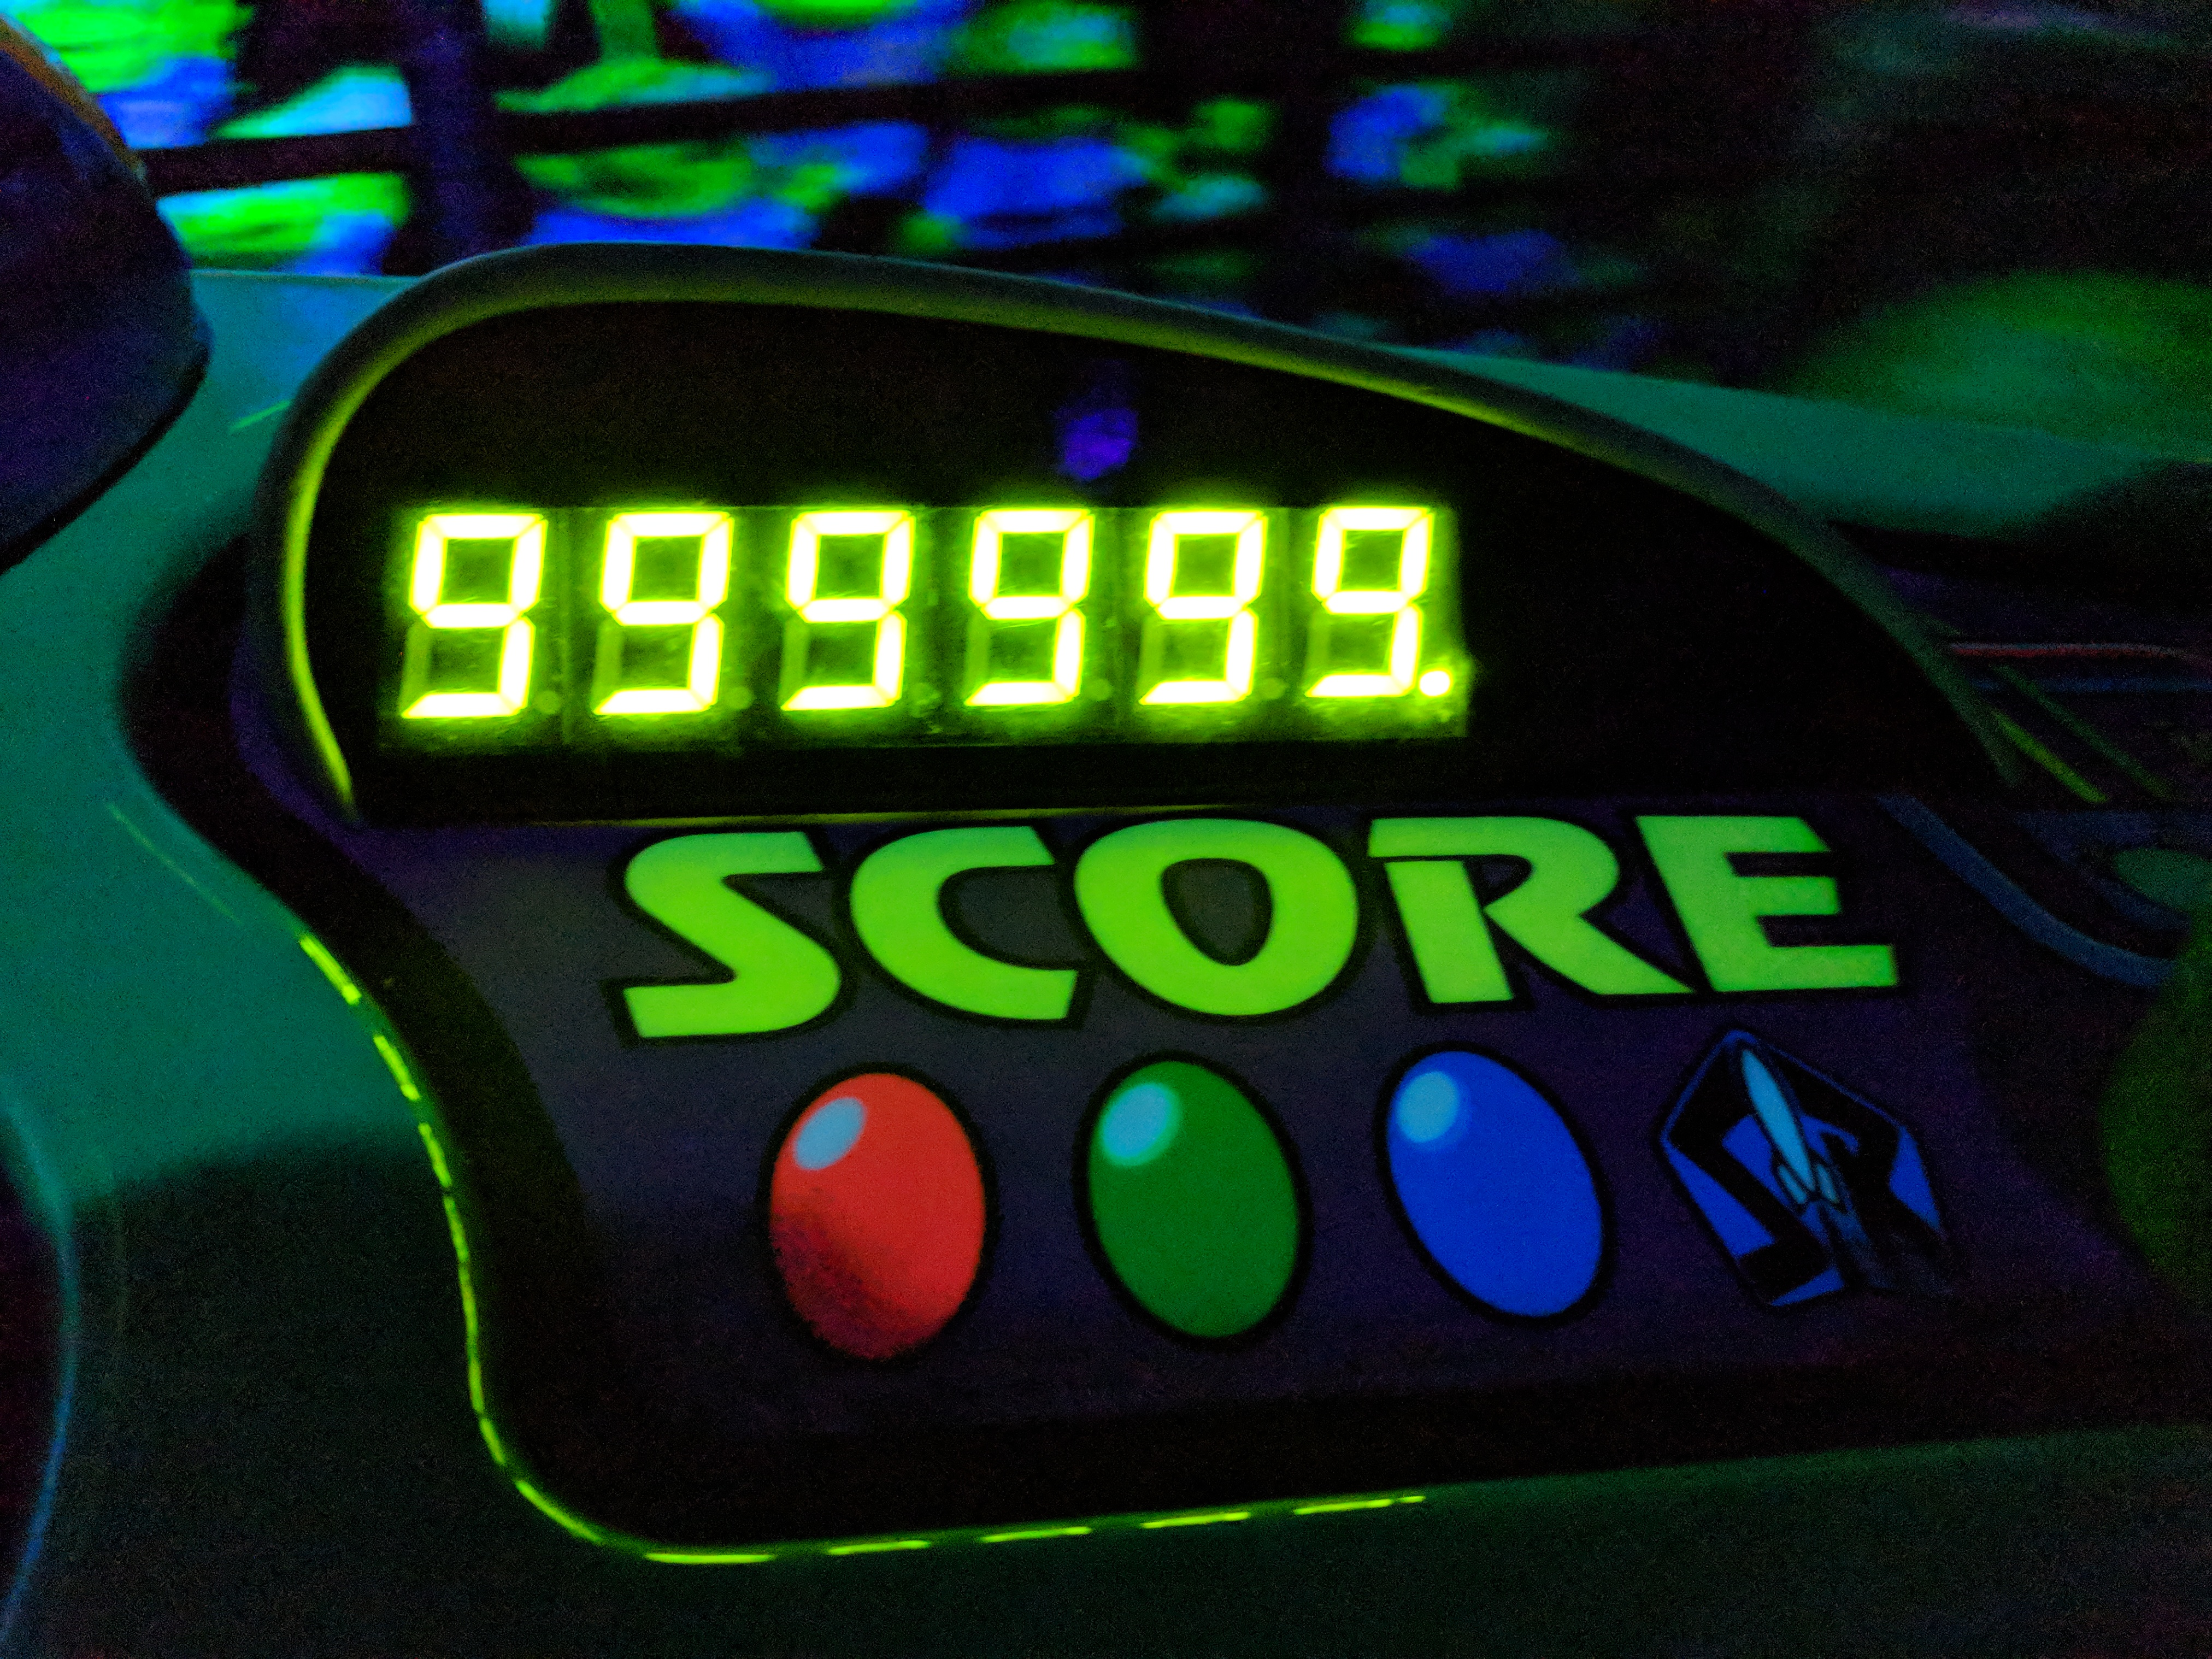 5 Tips for a High Score on Buzz Lightyear Astro Blasters